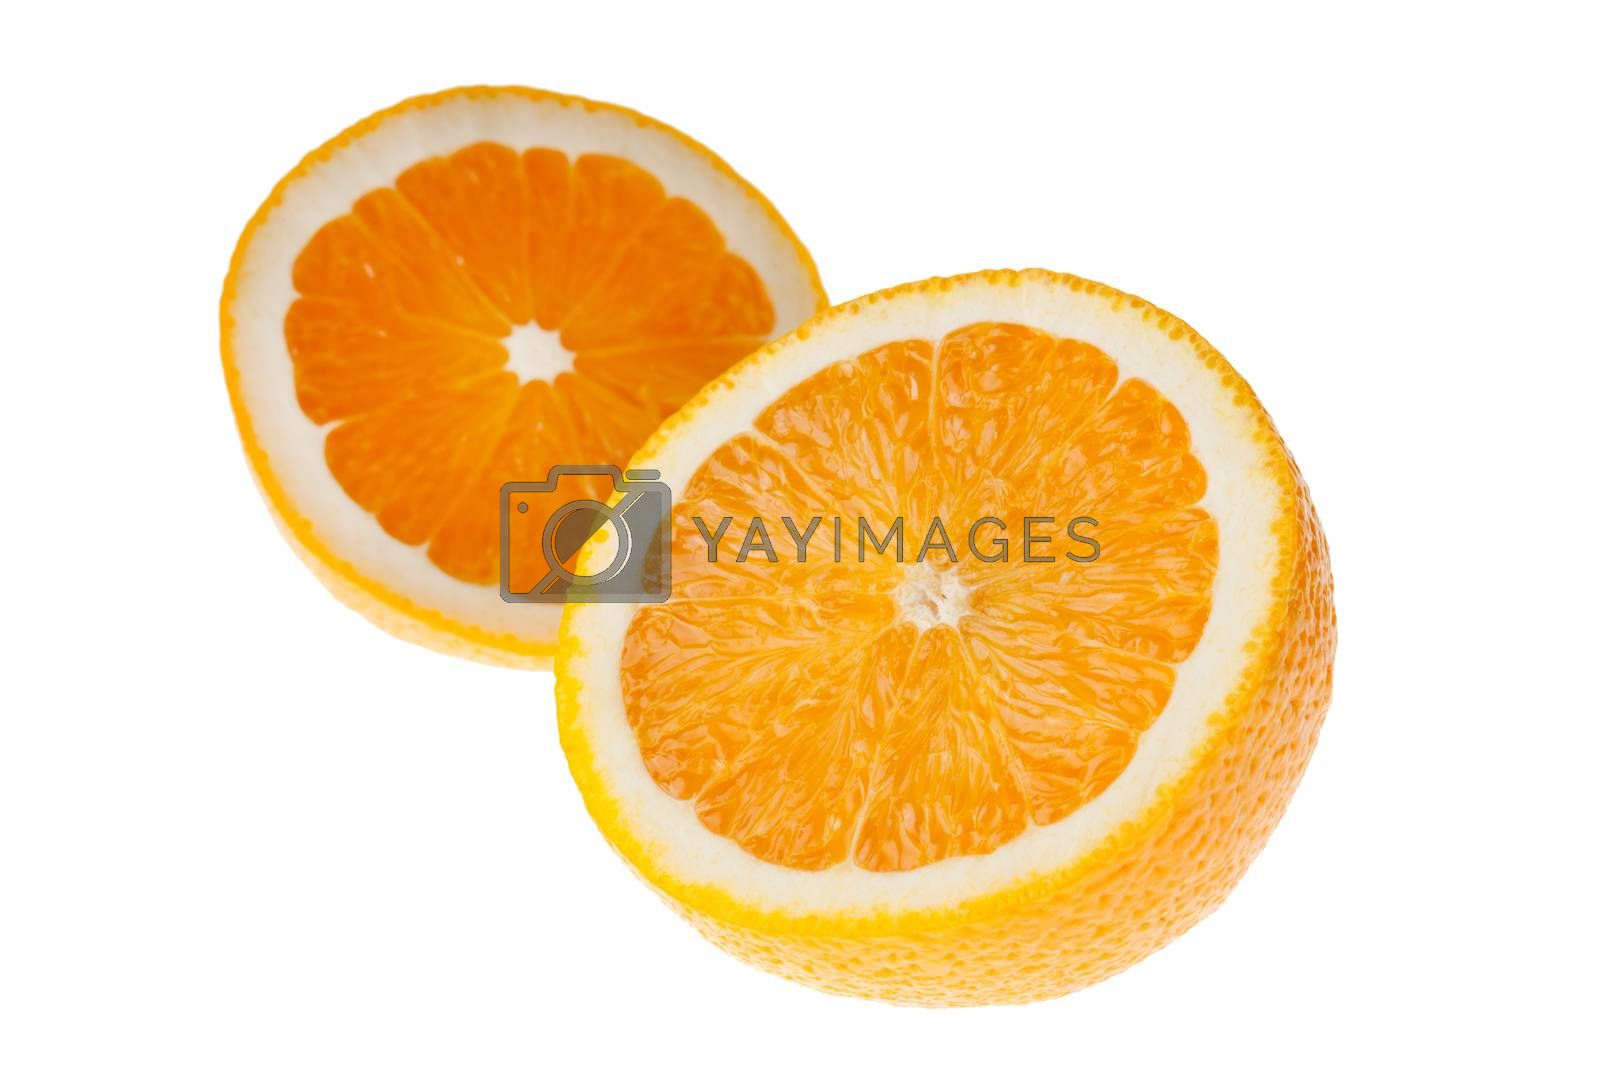 Royalty free image of Two halves of orange by Mekfoto